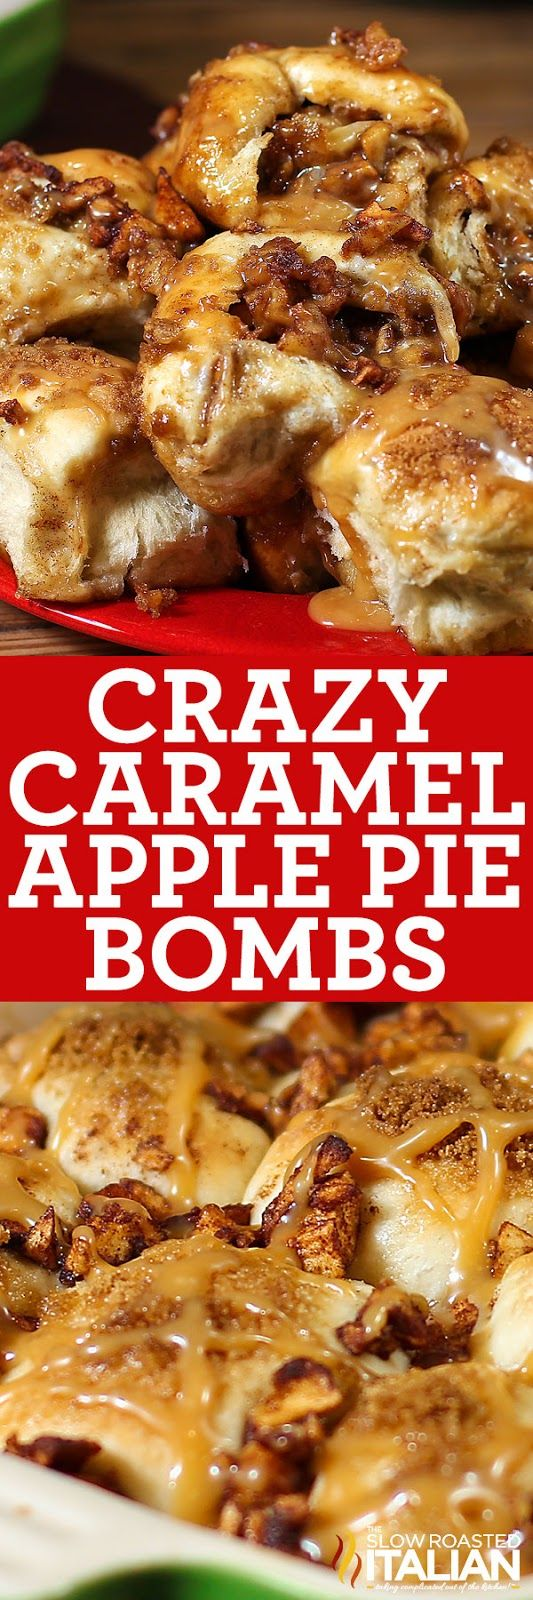 Crazy Caramel Apple Pie Bombs (With Video)